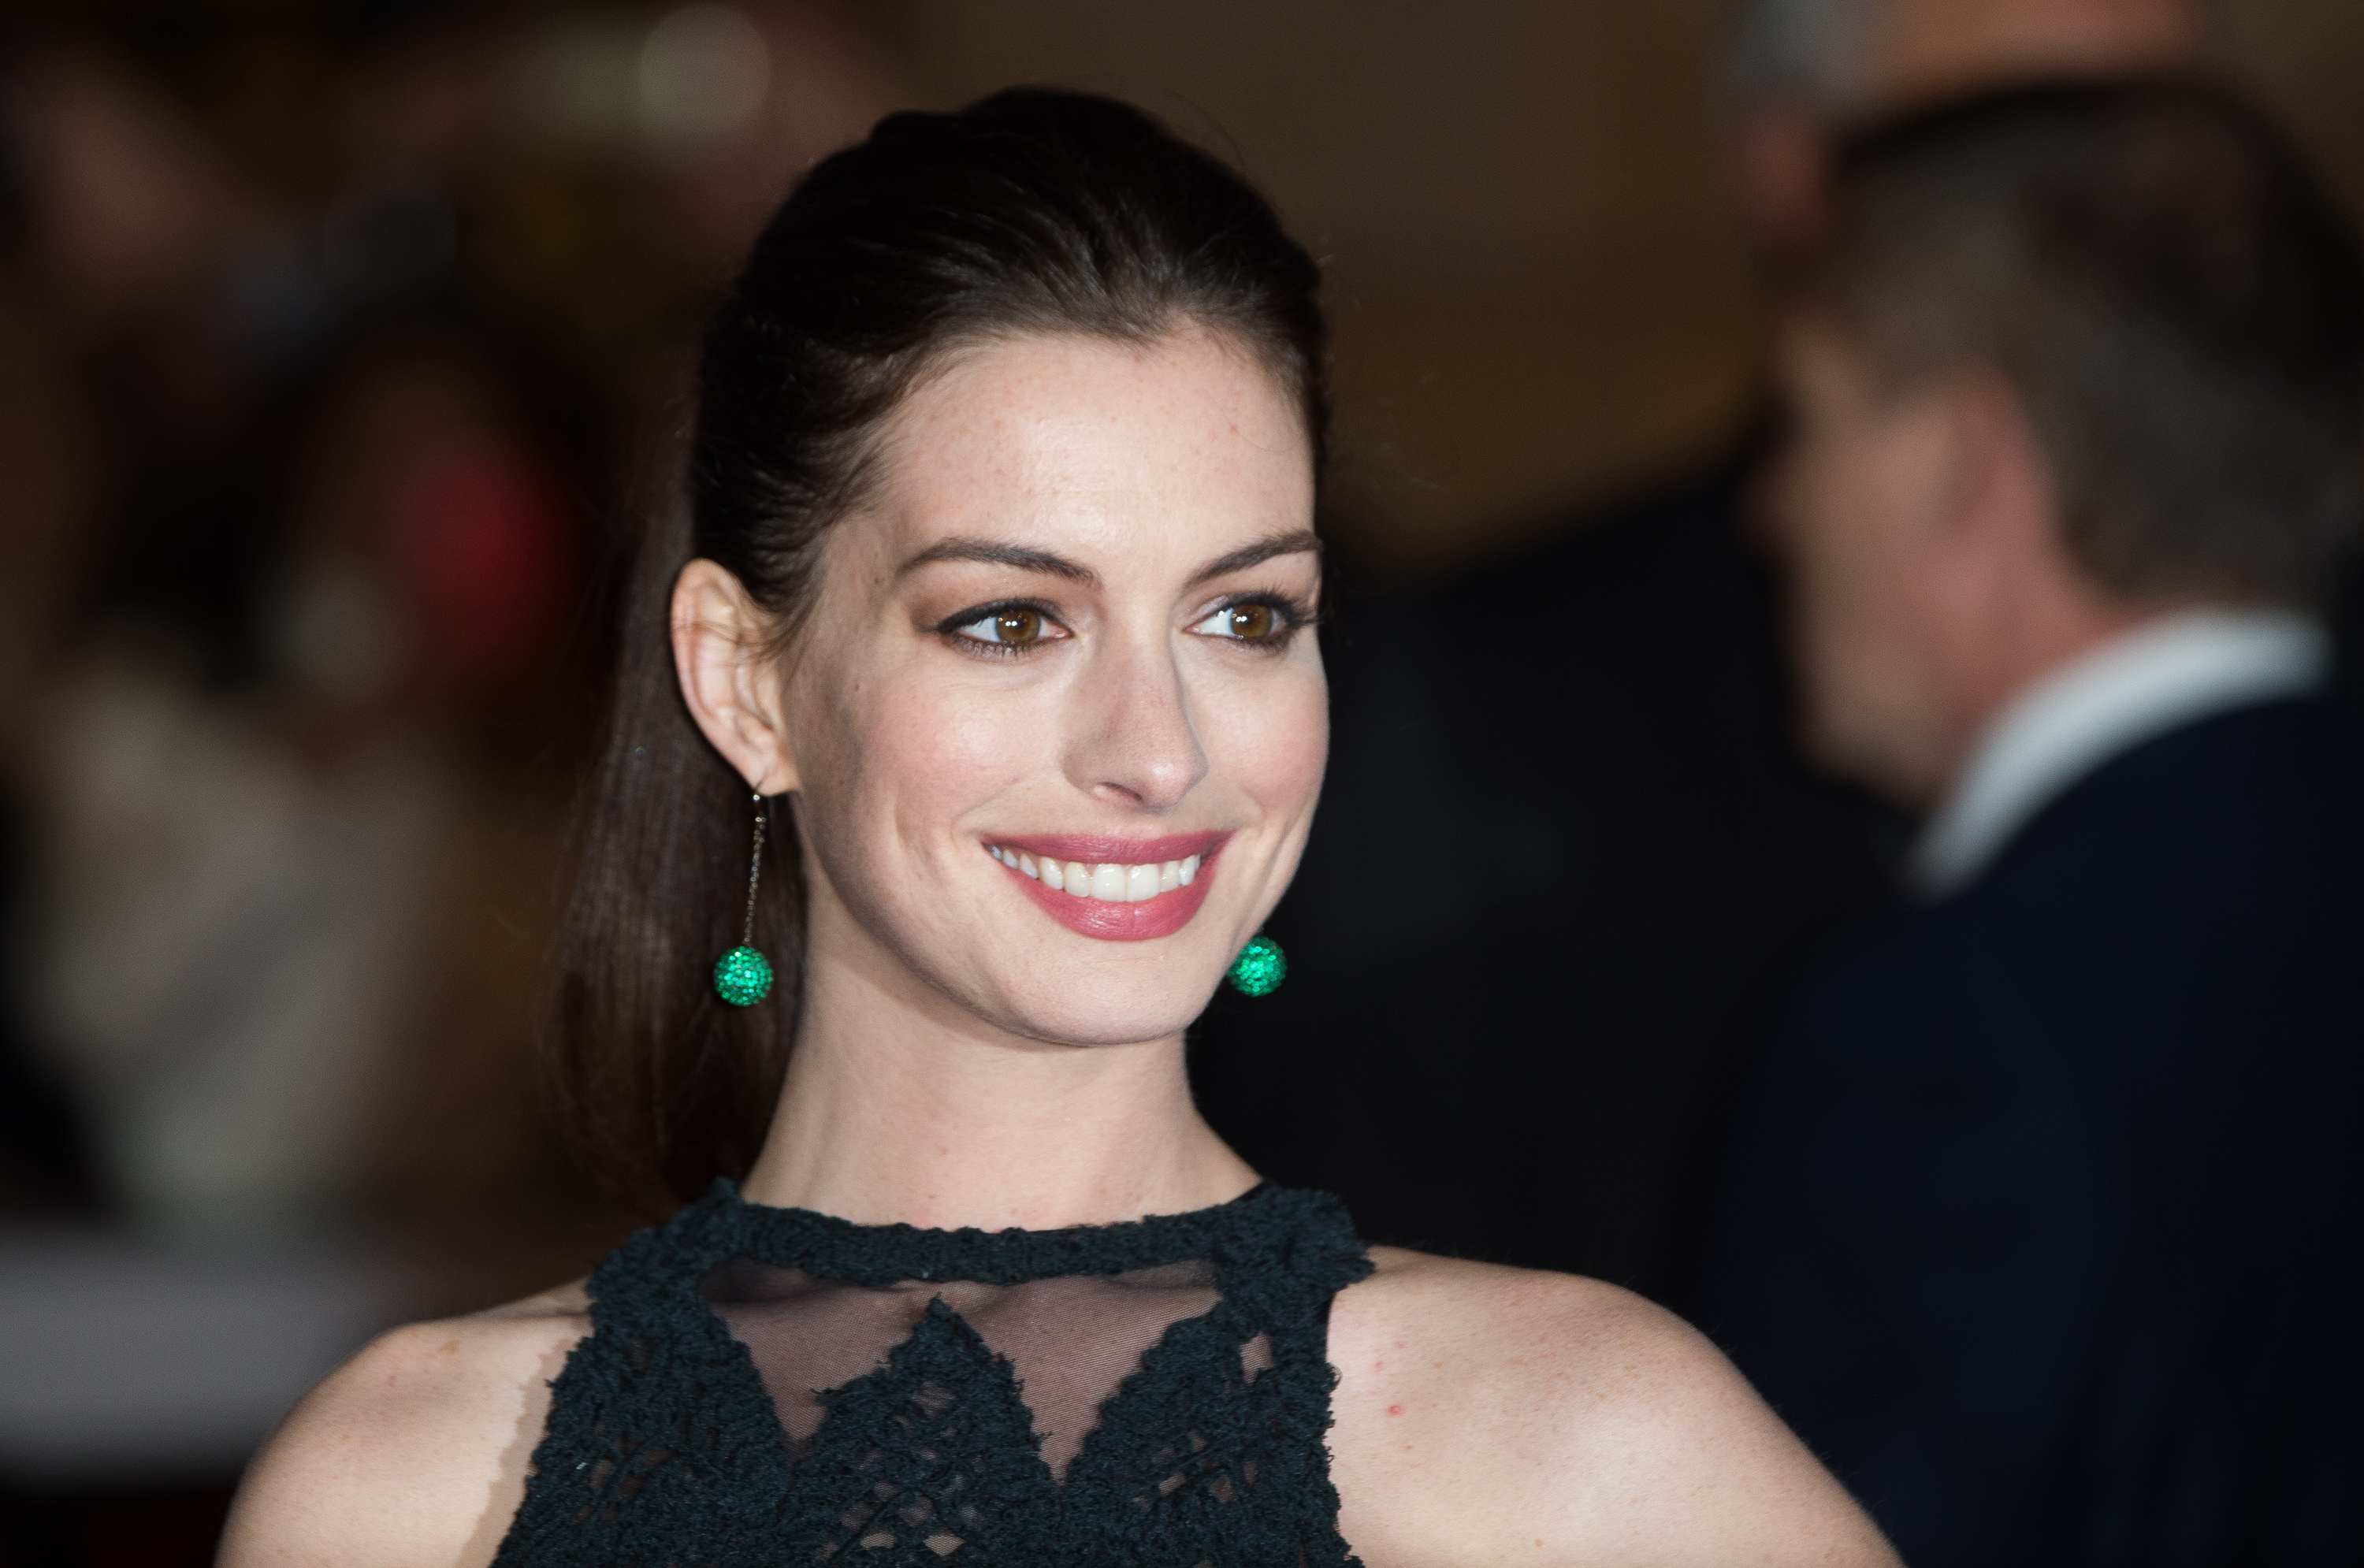 nne Hathaway attends the UK Premiere of  The Intern  at Vue West End on September 27, 2015 in London, England.